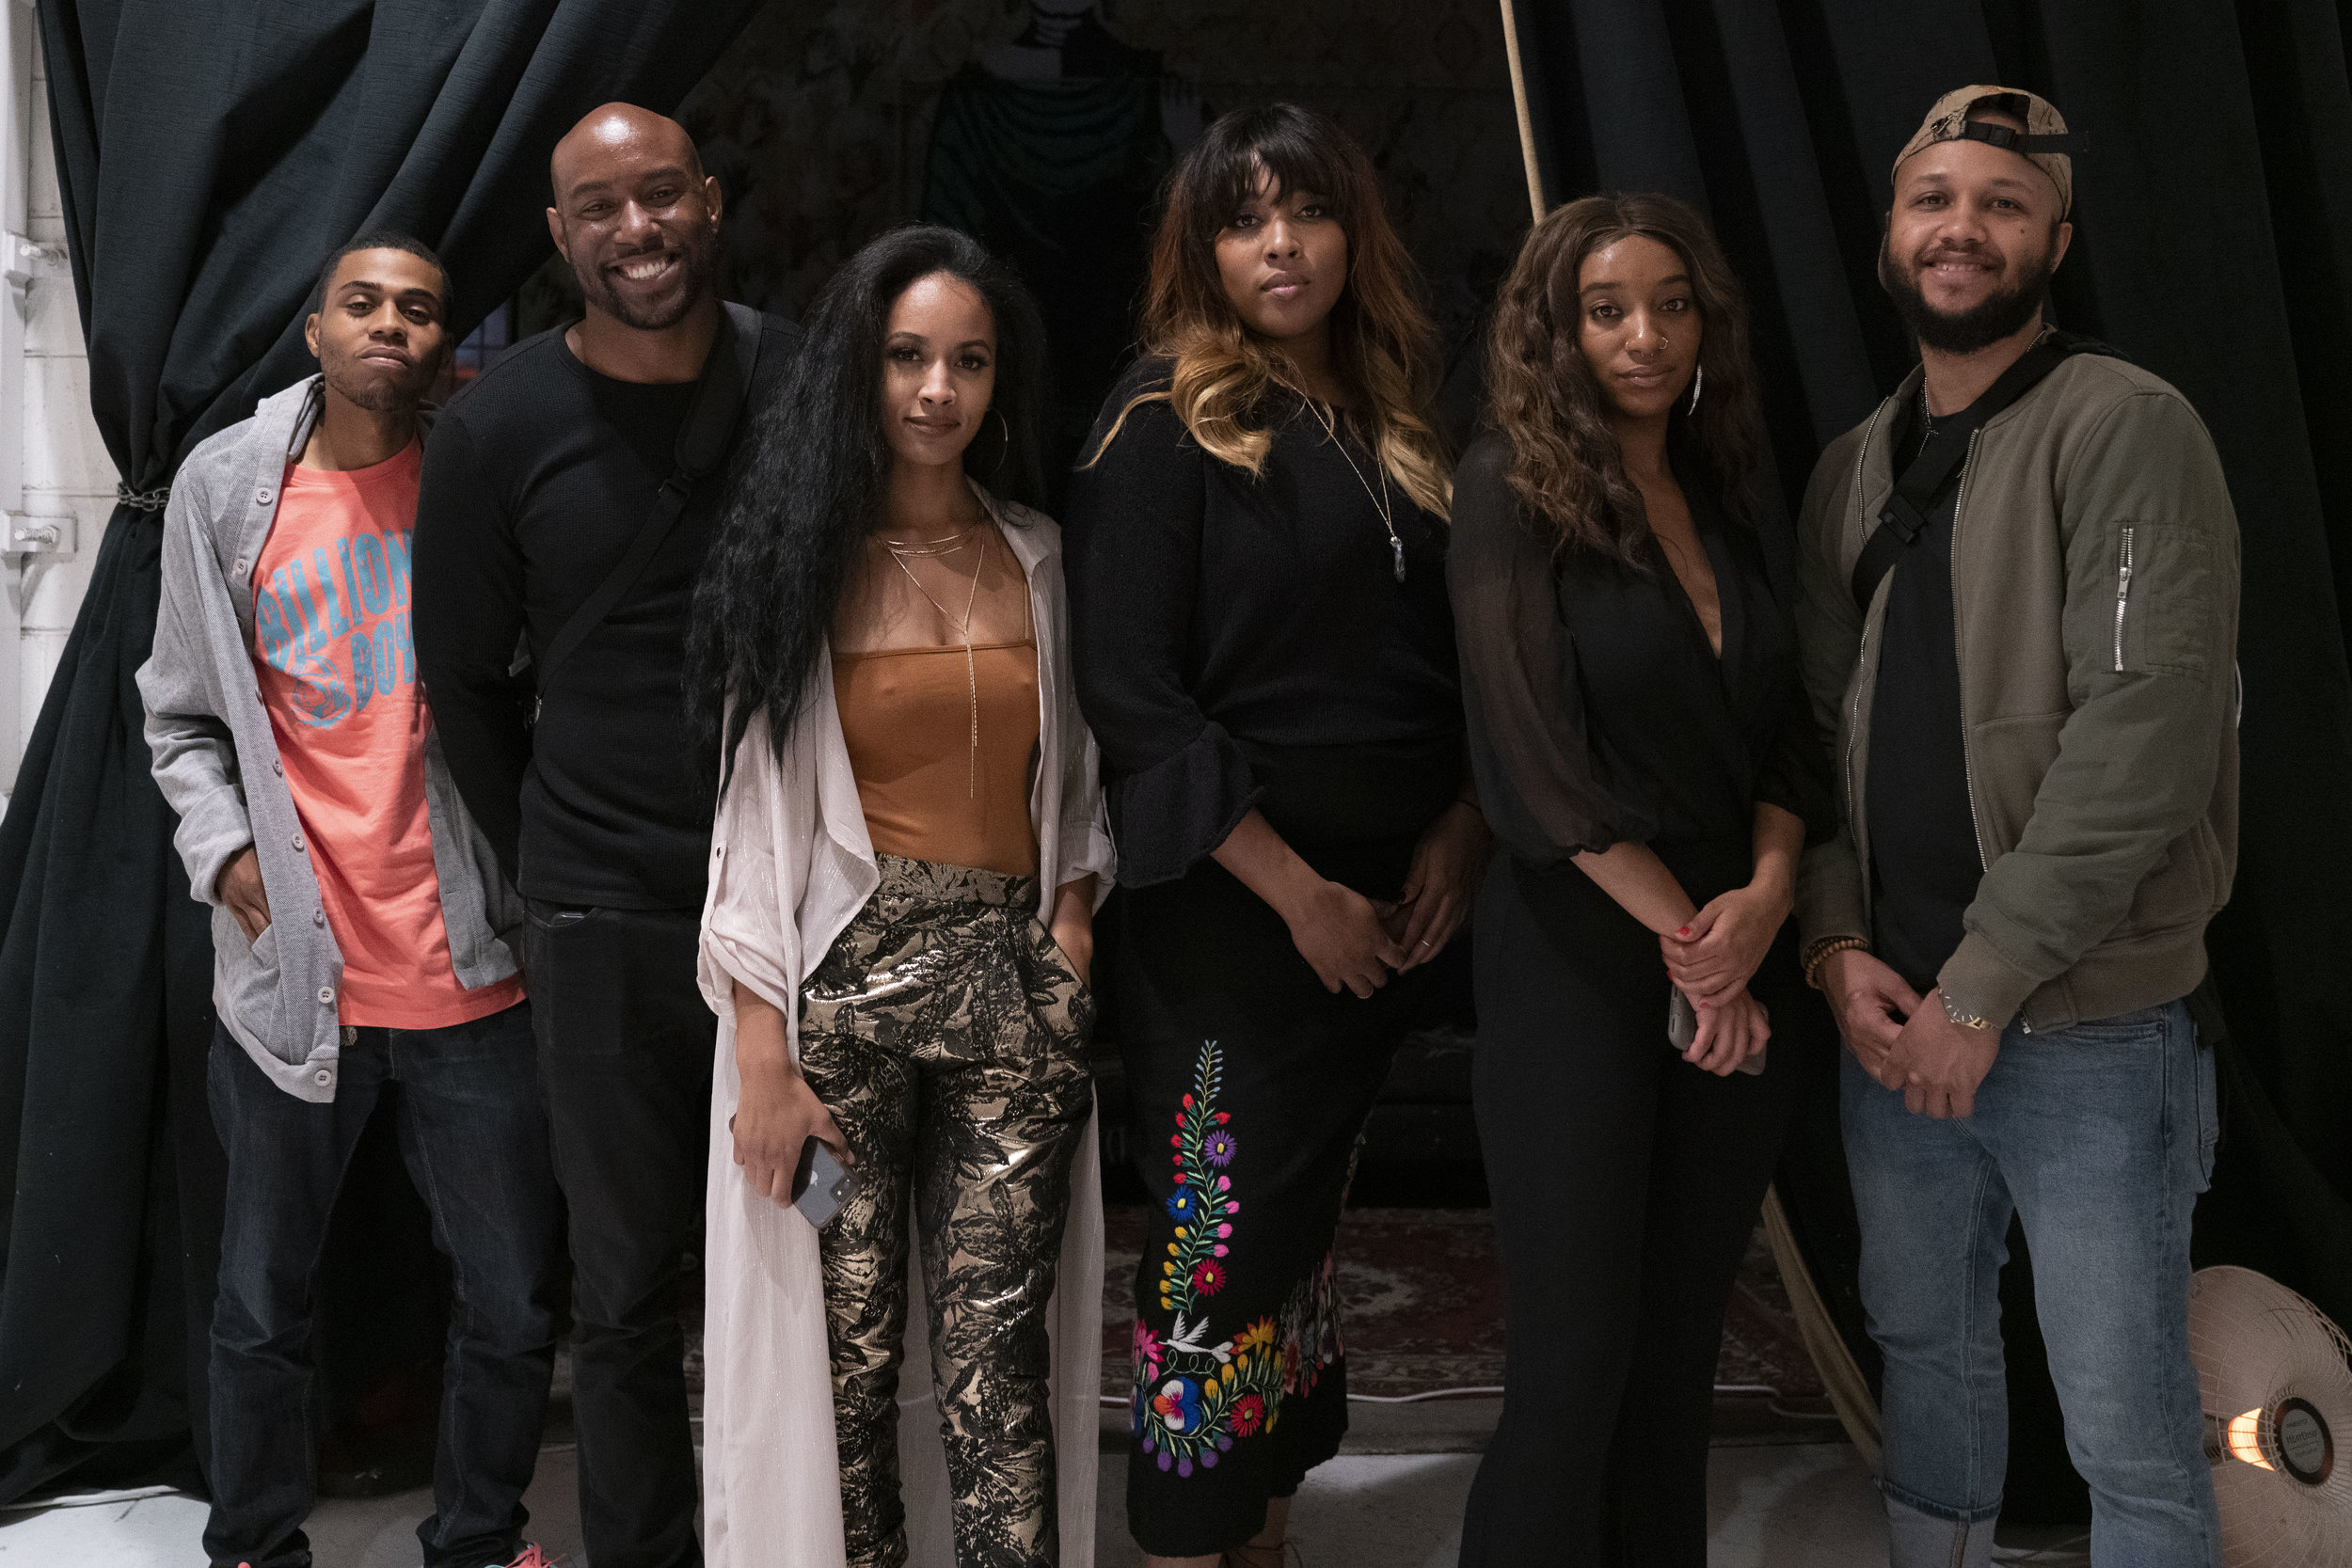 From left to right: Dillion (photographer), Curtis (photographer), Amber (me), Saidah (event creator), Shion (poet, partner), Charles (videographer)